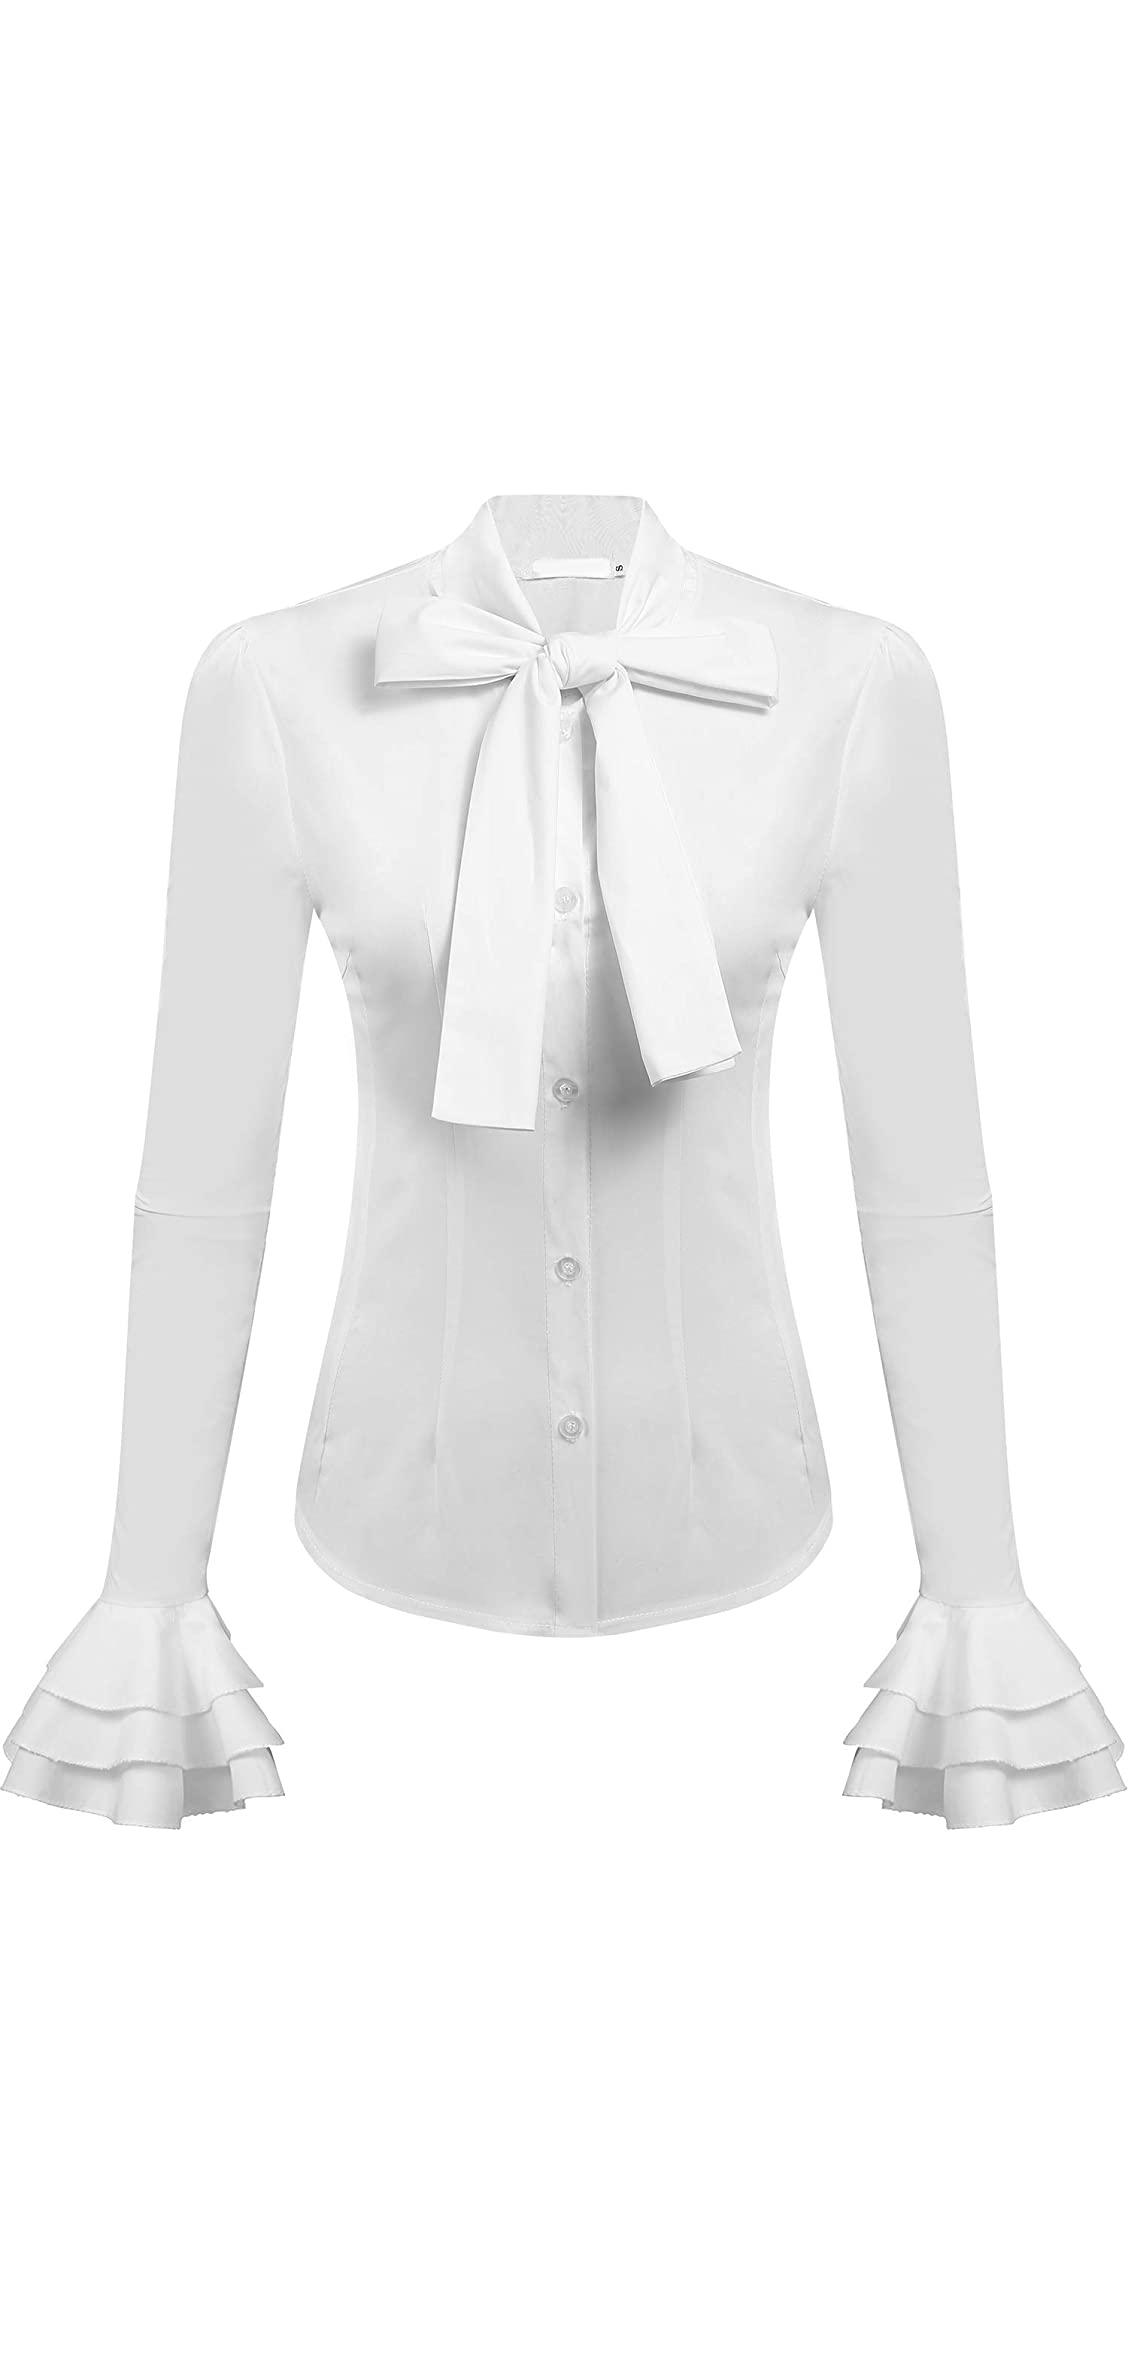 Women Bow Tie Neck Blouses Work Tops Long Sleeve Casual